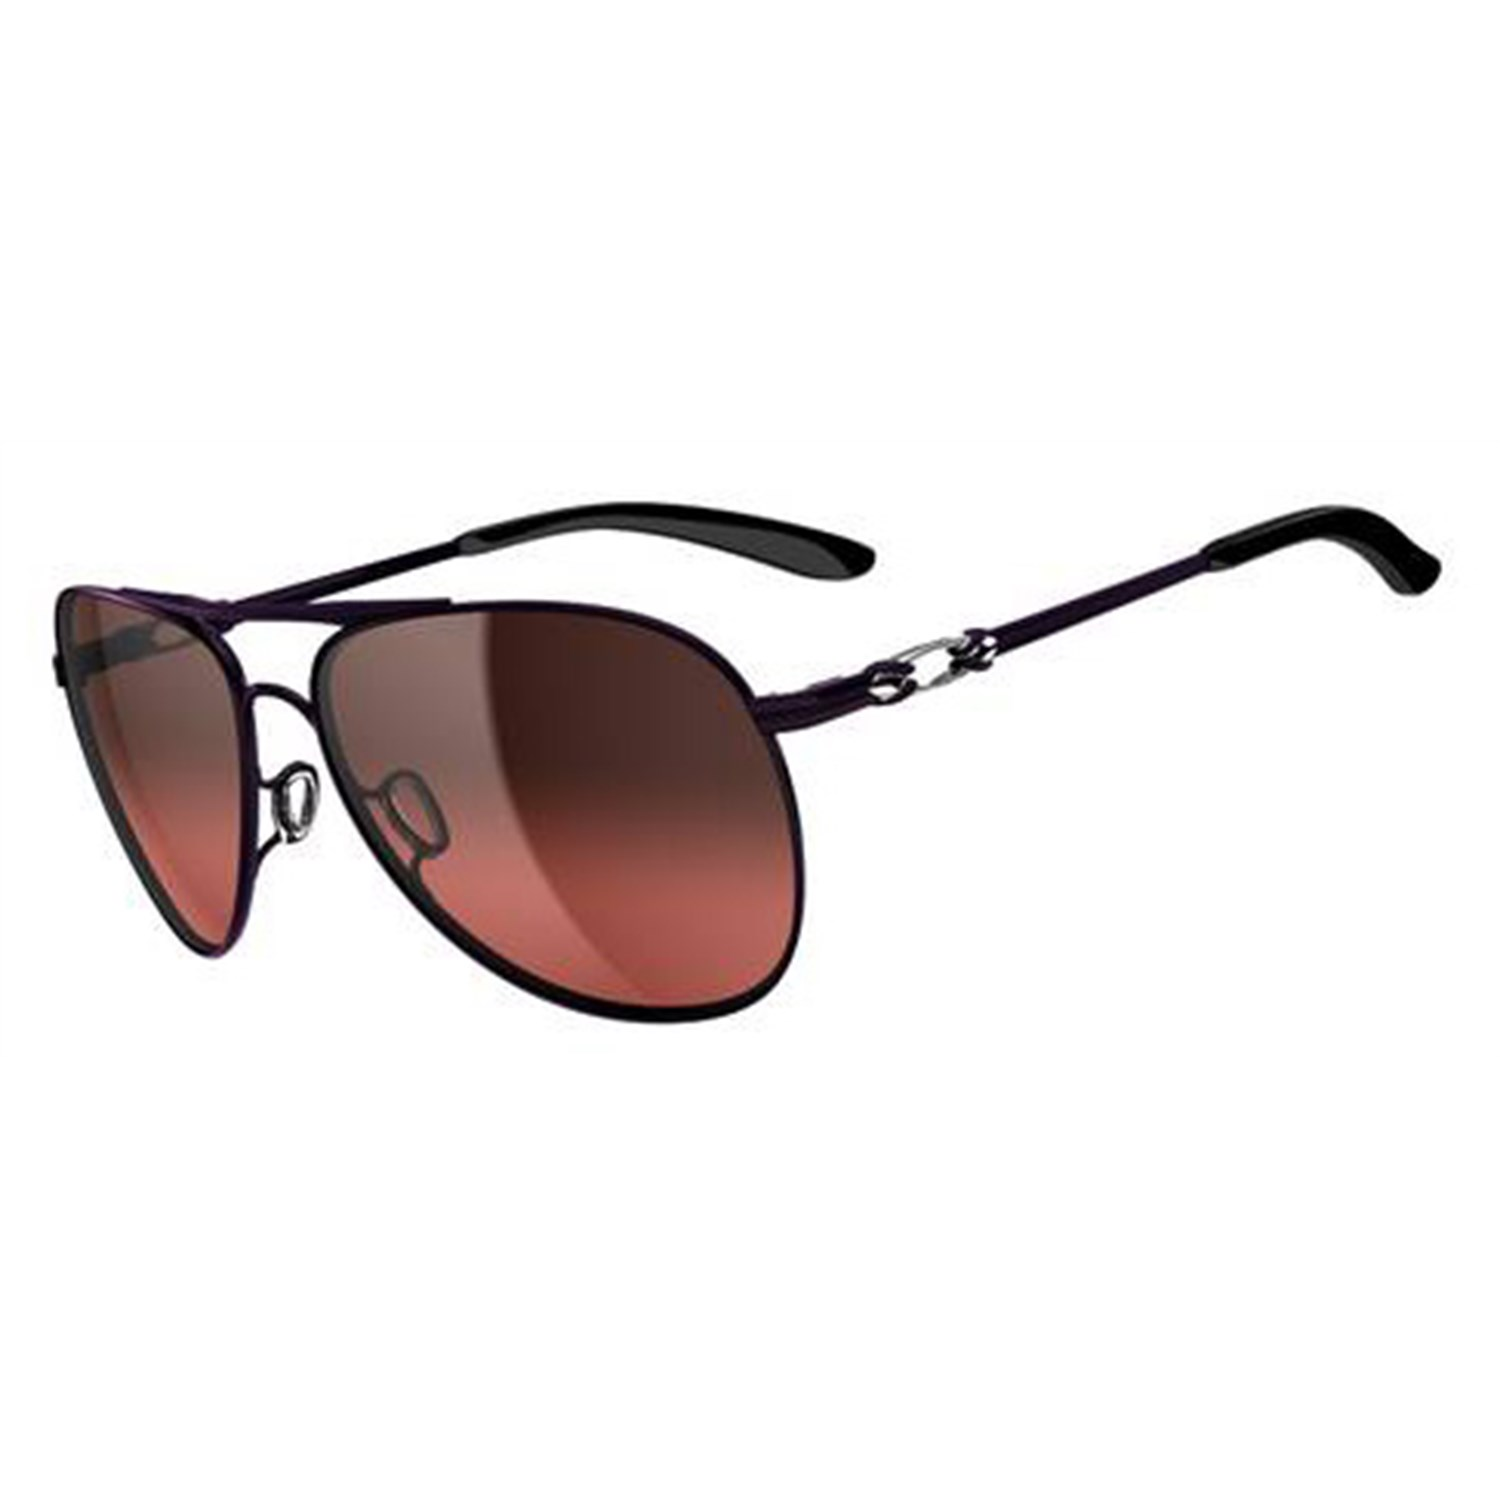 oakley womens sunglasses clearance